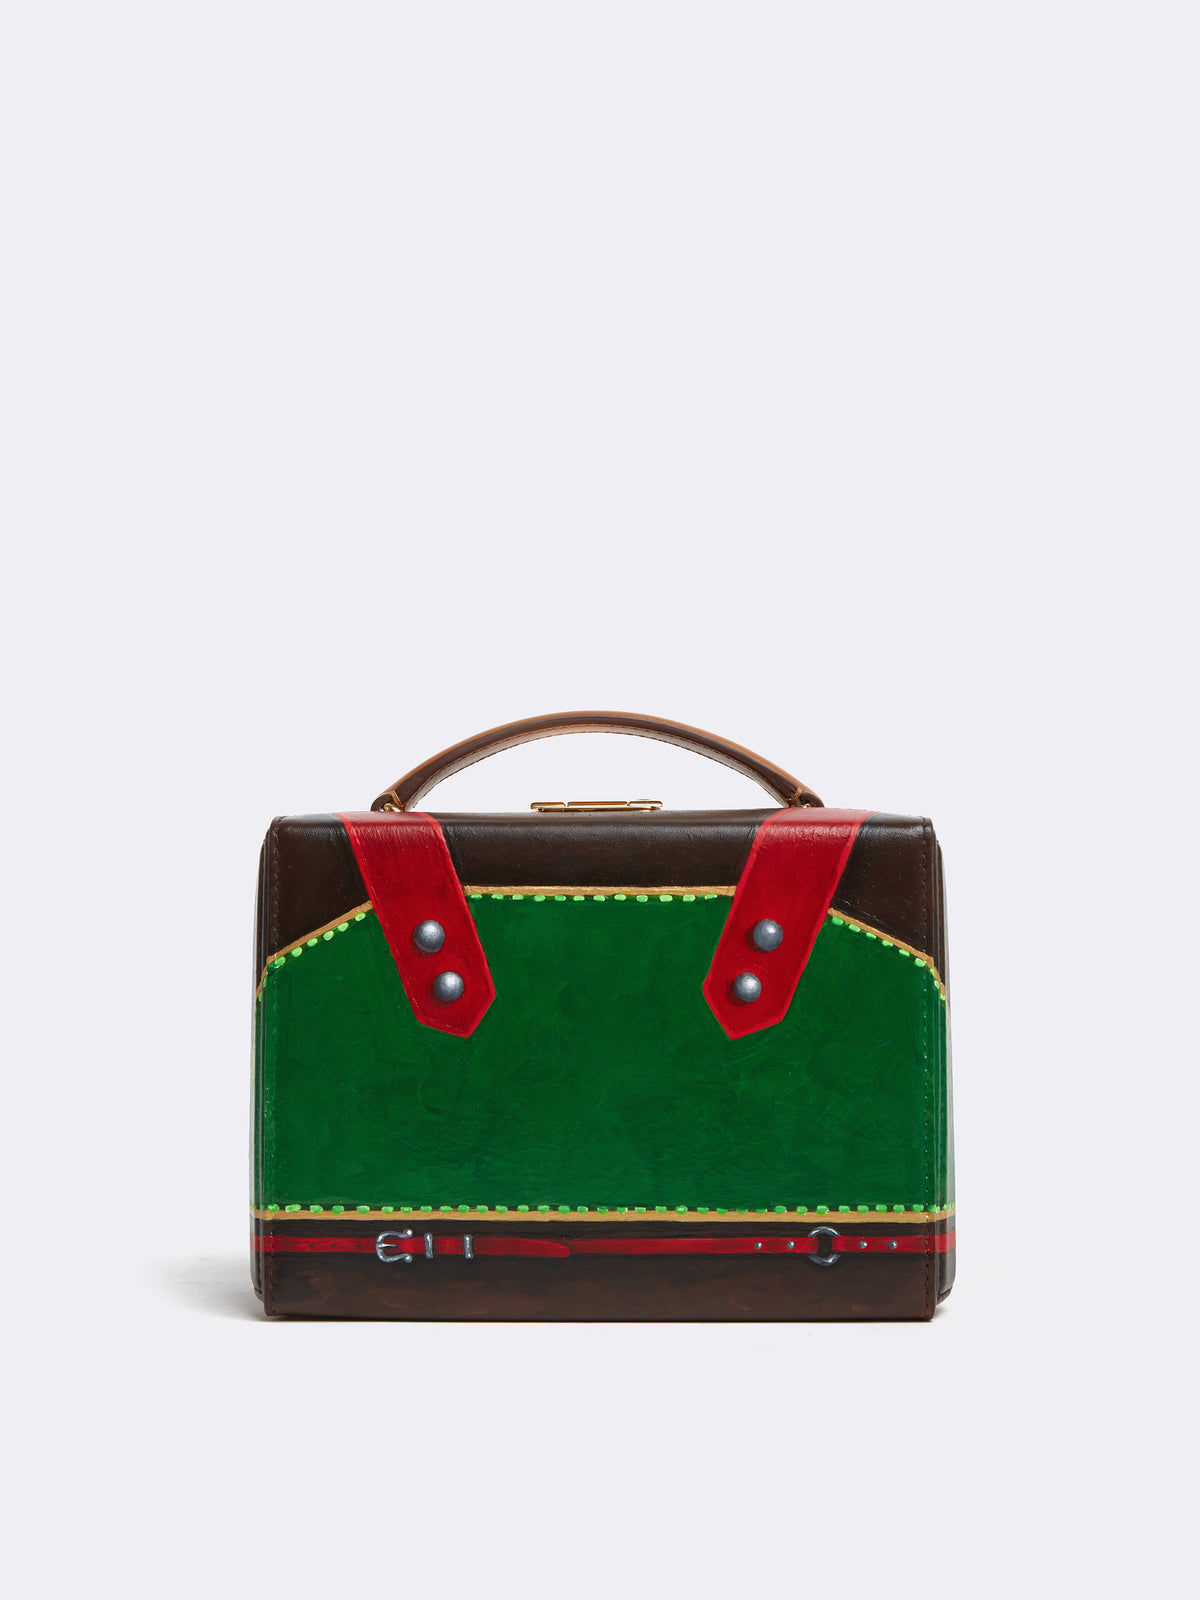 Sophie Matisse x Mark Cross Grace Small Leather Box Bag Smooth Calf Luggage / Red & Green Front